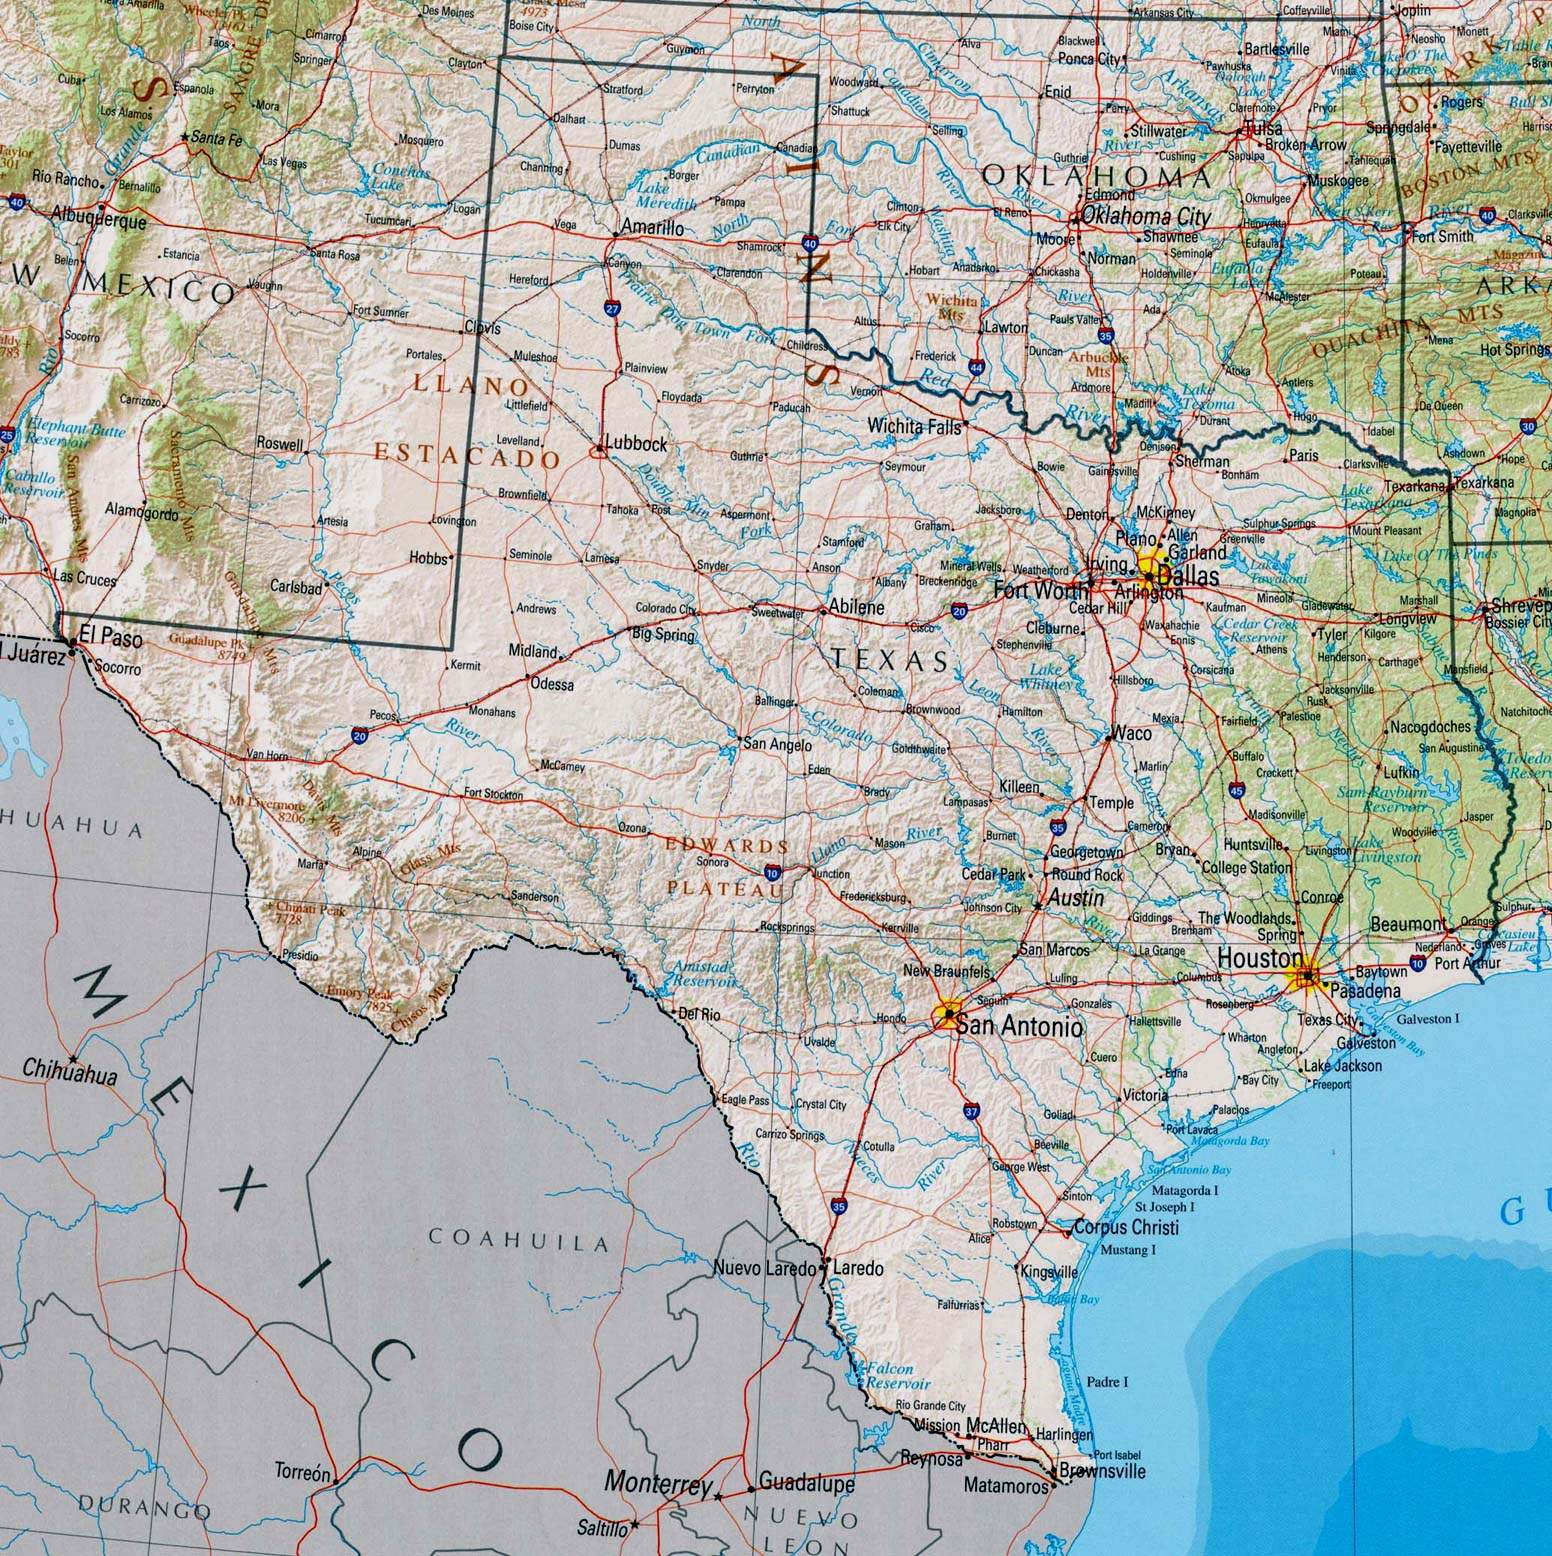 Large Texas Maps For Free Download And Print | High-Resolution And - Free Texas Highway Map